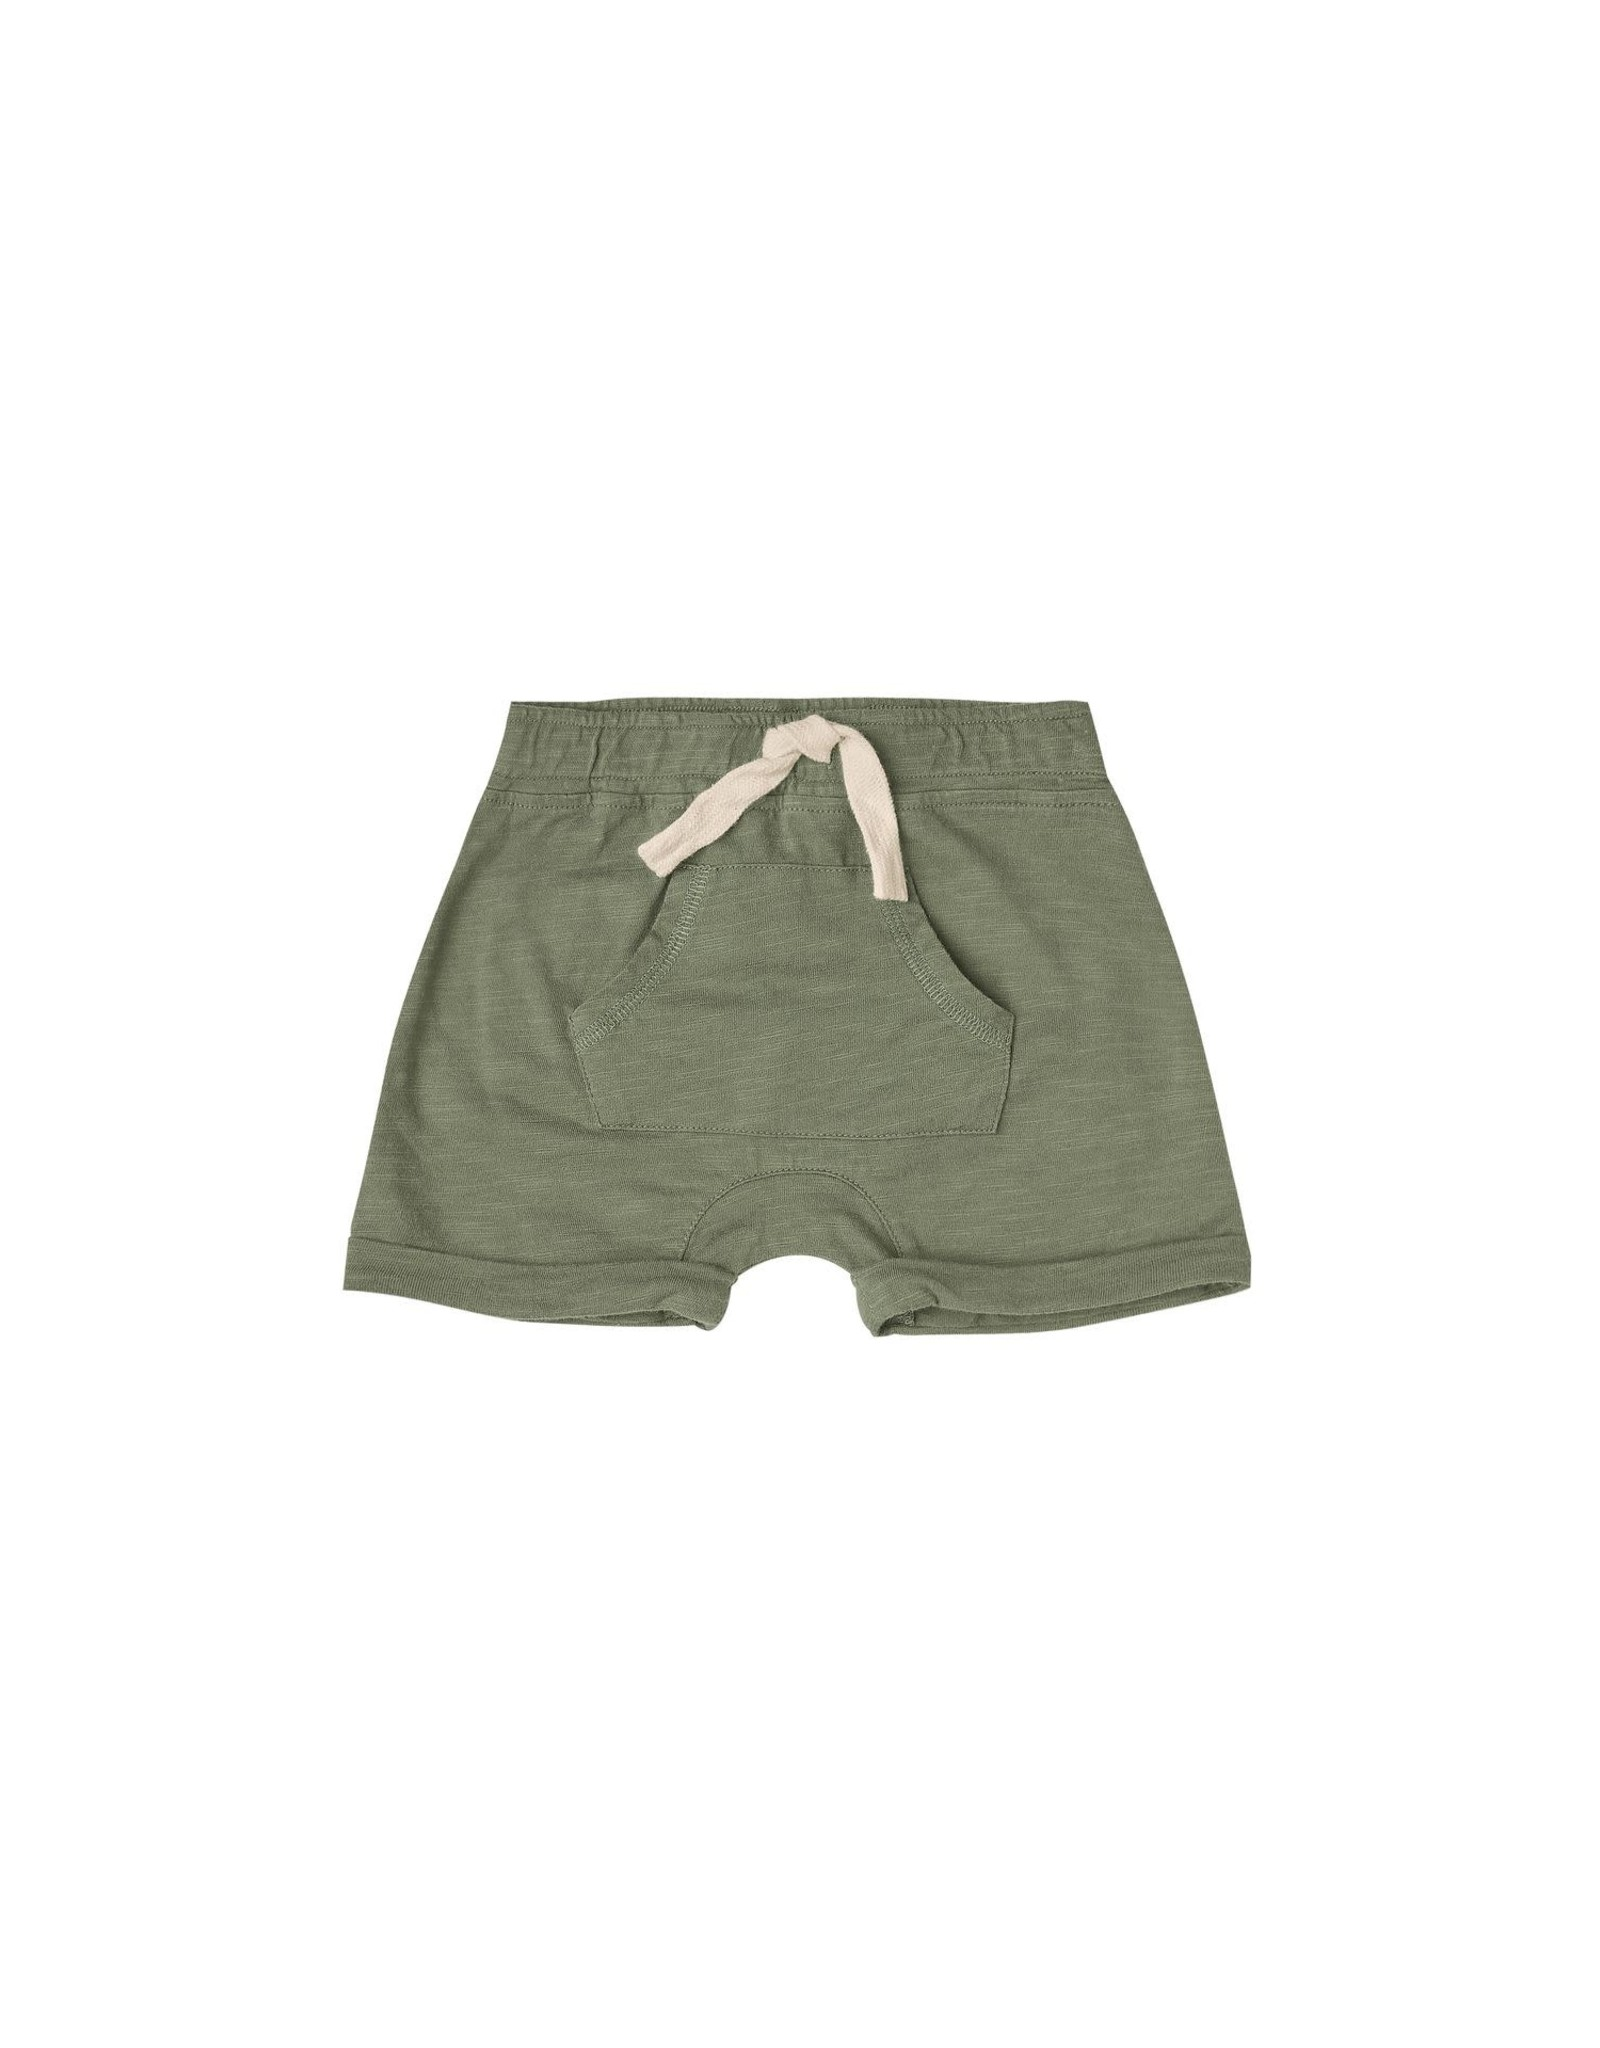 Rylee and Cru pouch short- fern